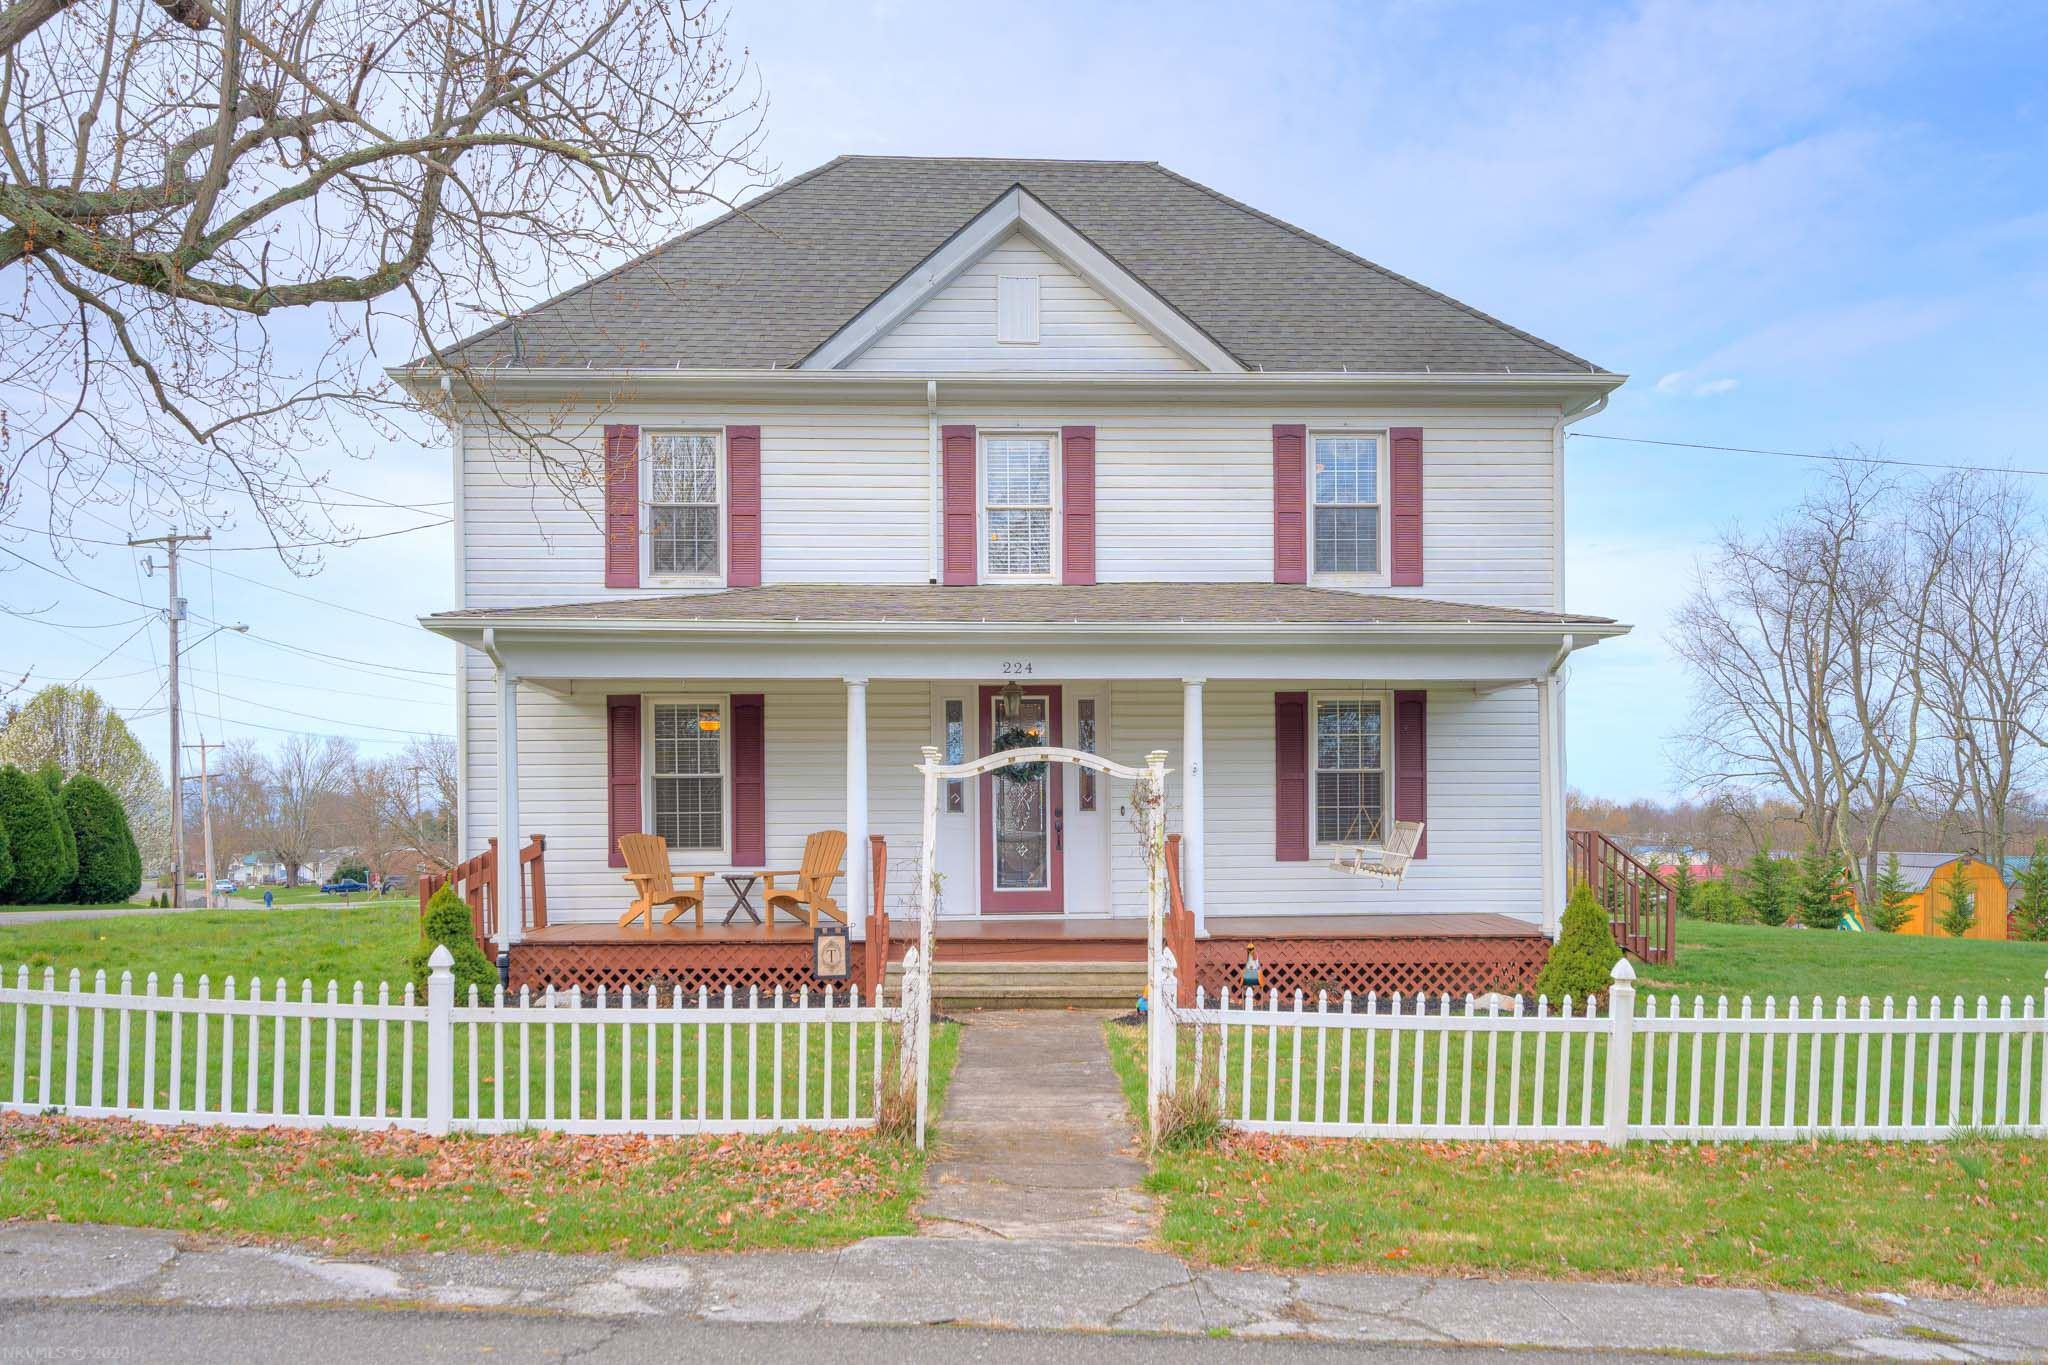 This beautiful updated farmhouse will take your breath away! Large covered front porch welcomes you through a magnificent entrance into a spacious foyer. Visit the formal sitting area w/ fp and built in bookcases. Gleaming hardwoods throughout the main lead into the large, bright, modern kitchen with custom cabinets, gorgeous granite counters, island, and gas stove. Large separate formal dining area perfect for family gatherings! Master on the main with private bath, tiled shower, and large walk in can also serve as a guest bedroom!  Laundry on the main, half bath and mud area by the back door. Head up the wide polished stairway to another bright Master bedroom, with private bath- tiled shower, claw footed tub and double back saver sinks. Two more large, bright bedrooms and additional staircase to a floored attic with plumbing that is ready to finish. Crown molding, custom woodwork, high ceilings and modern fixtures showcase a decorator's touch. This one won't last long- see it today!